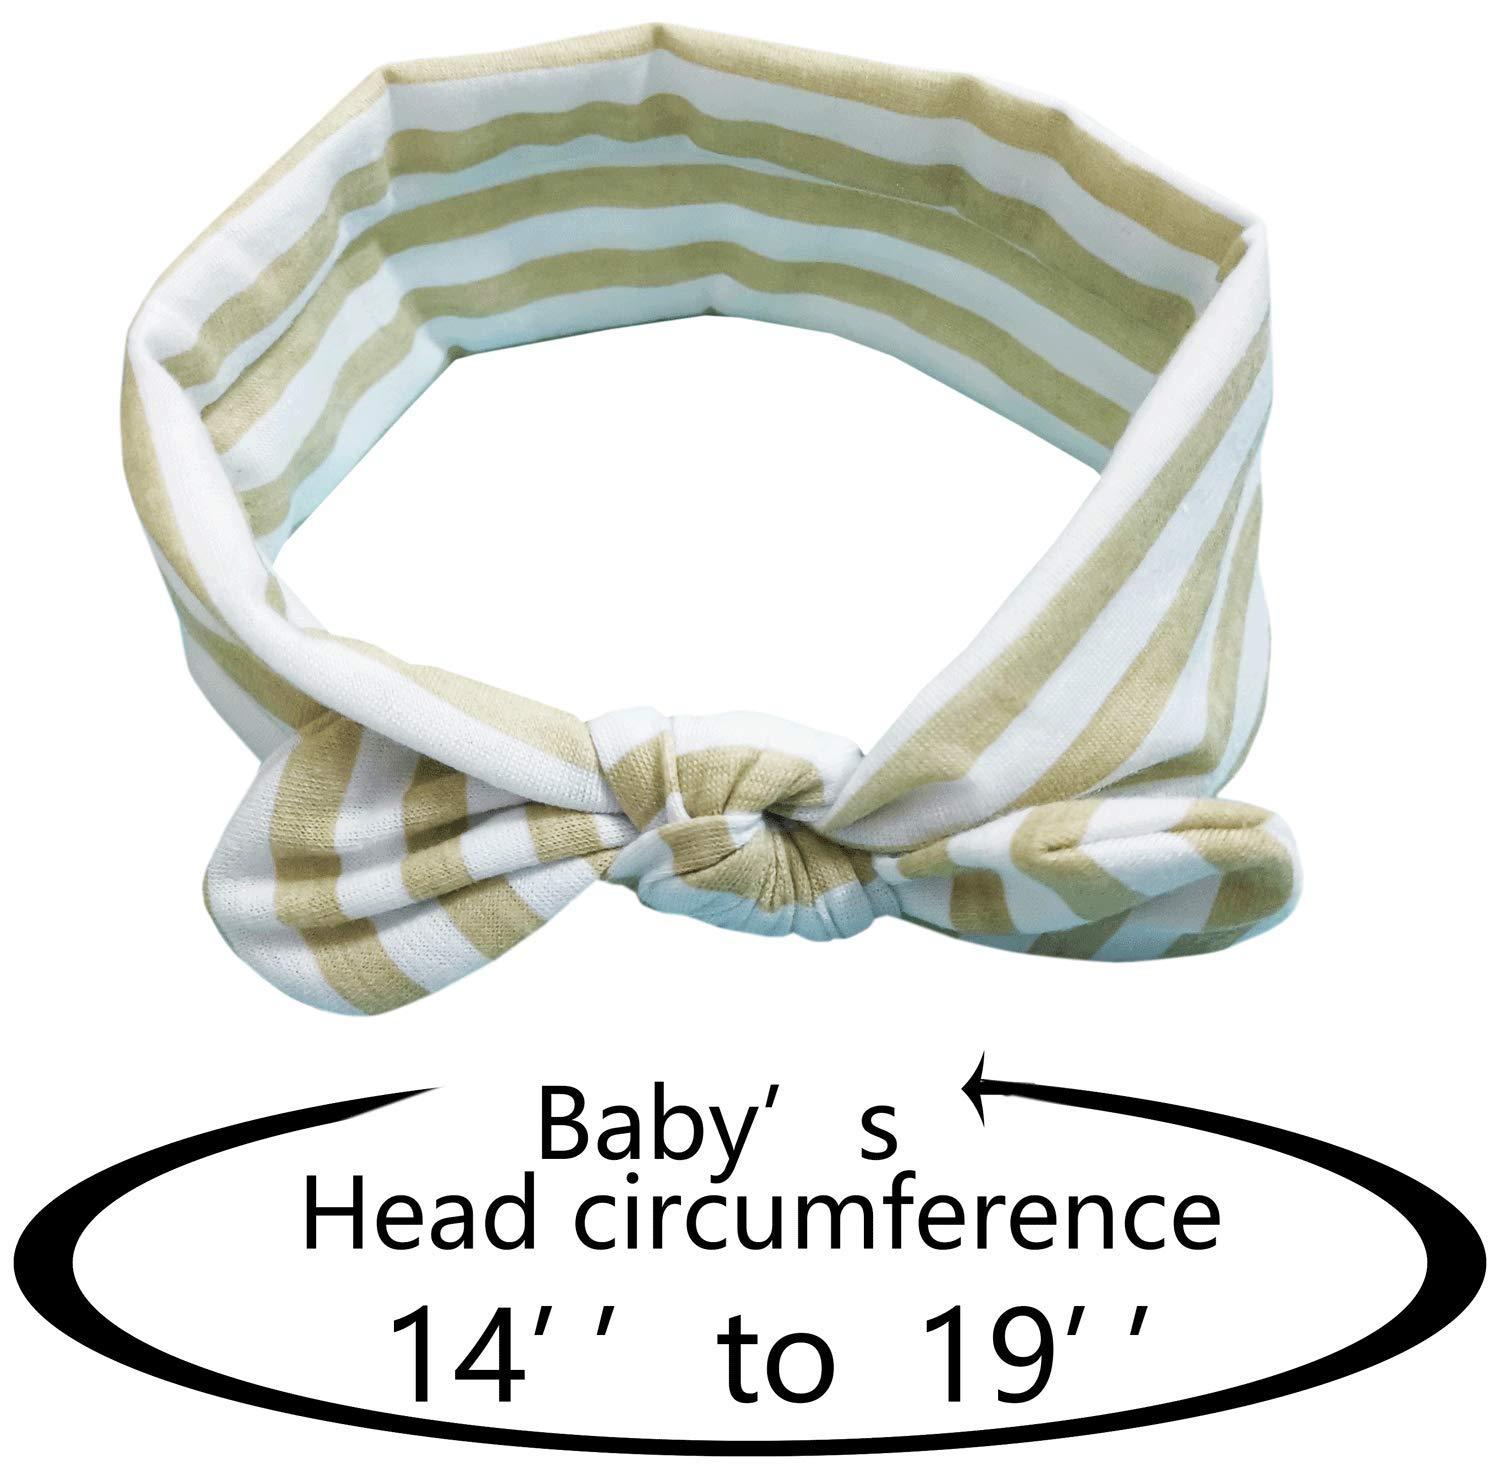 Baby Nylon headbands Turban Knotted Girls Hairband Super Soft and Stretchy Hair Wrap for Newborn Toddle Childrens Dayreamily